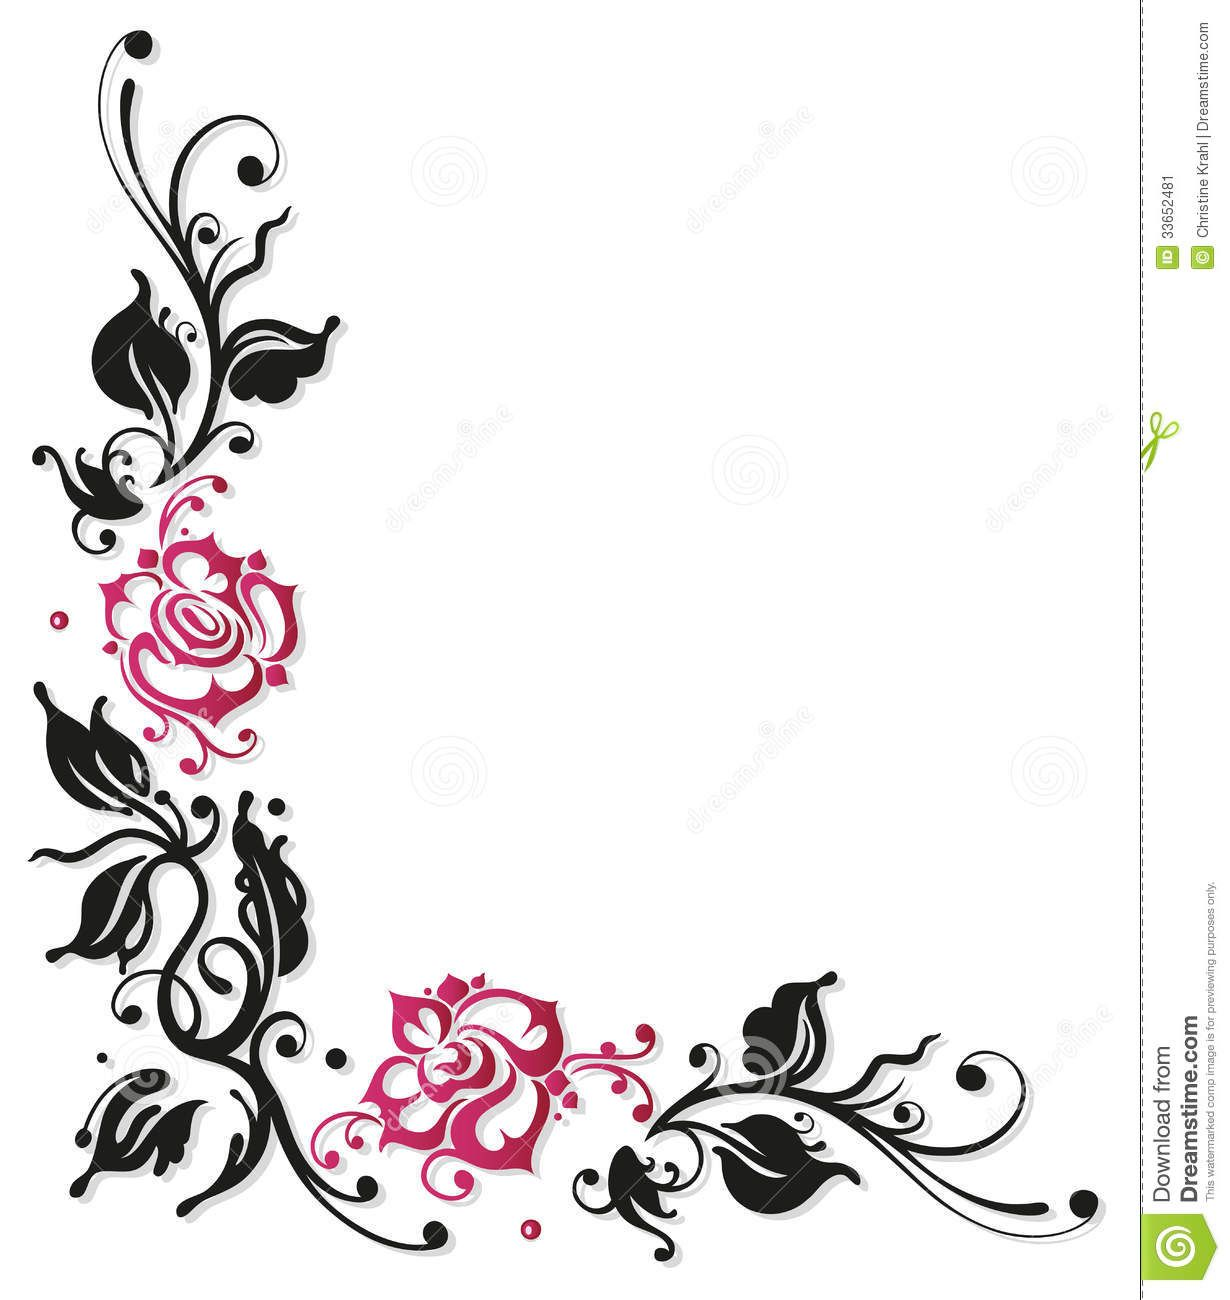 Image result for flower border design black and white